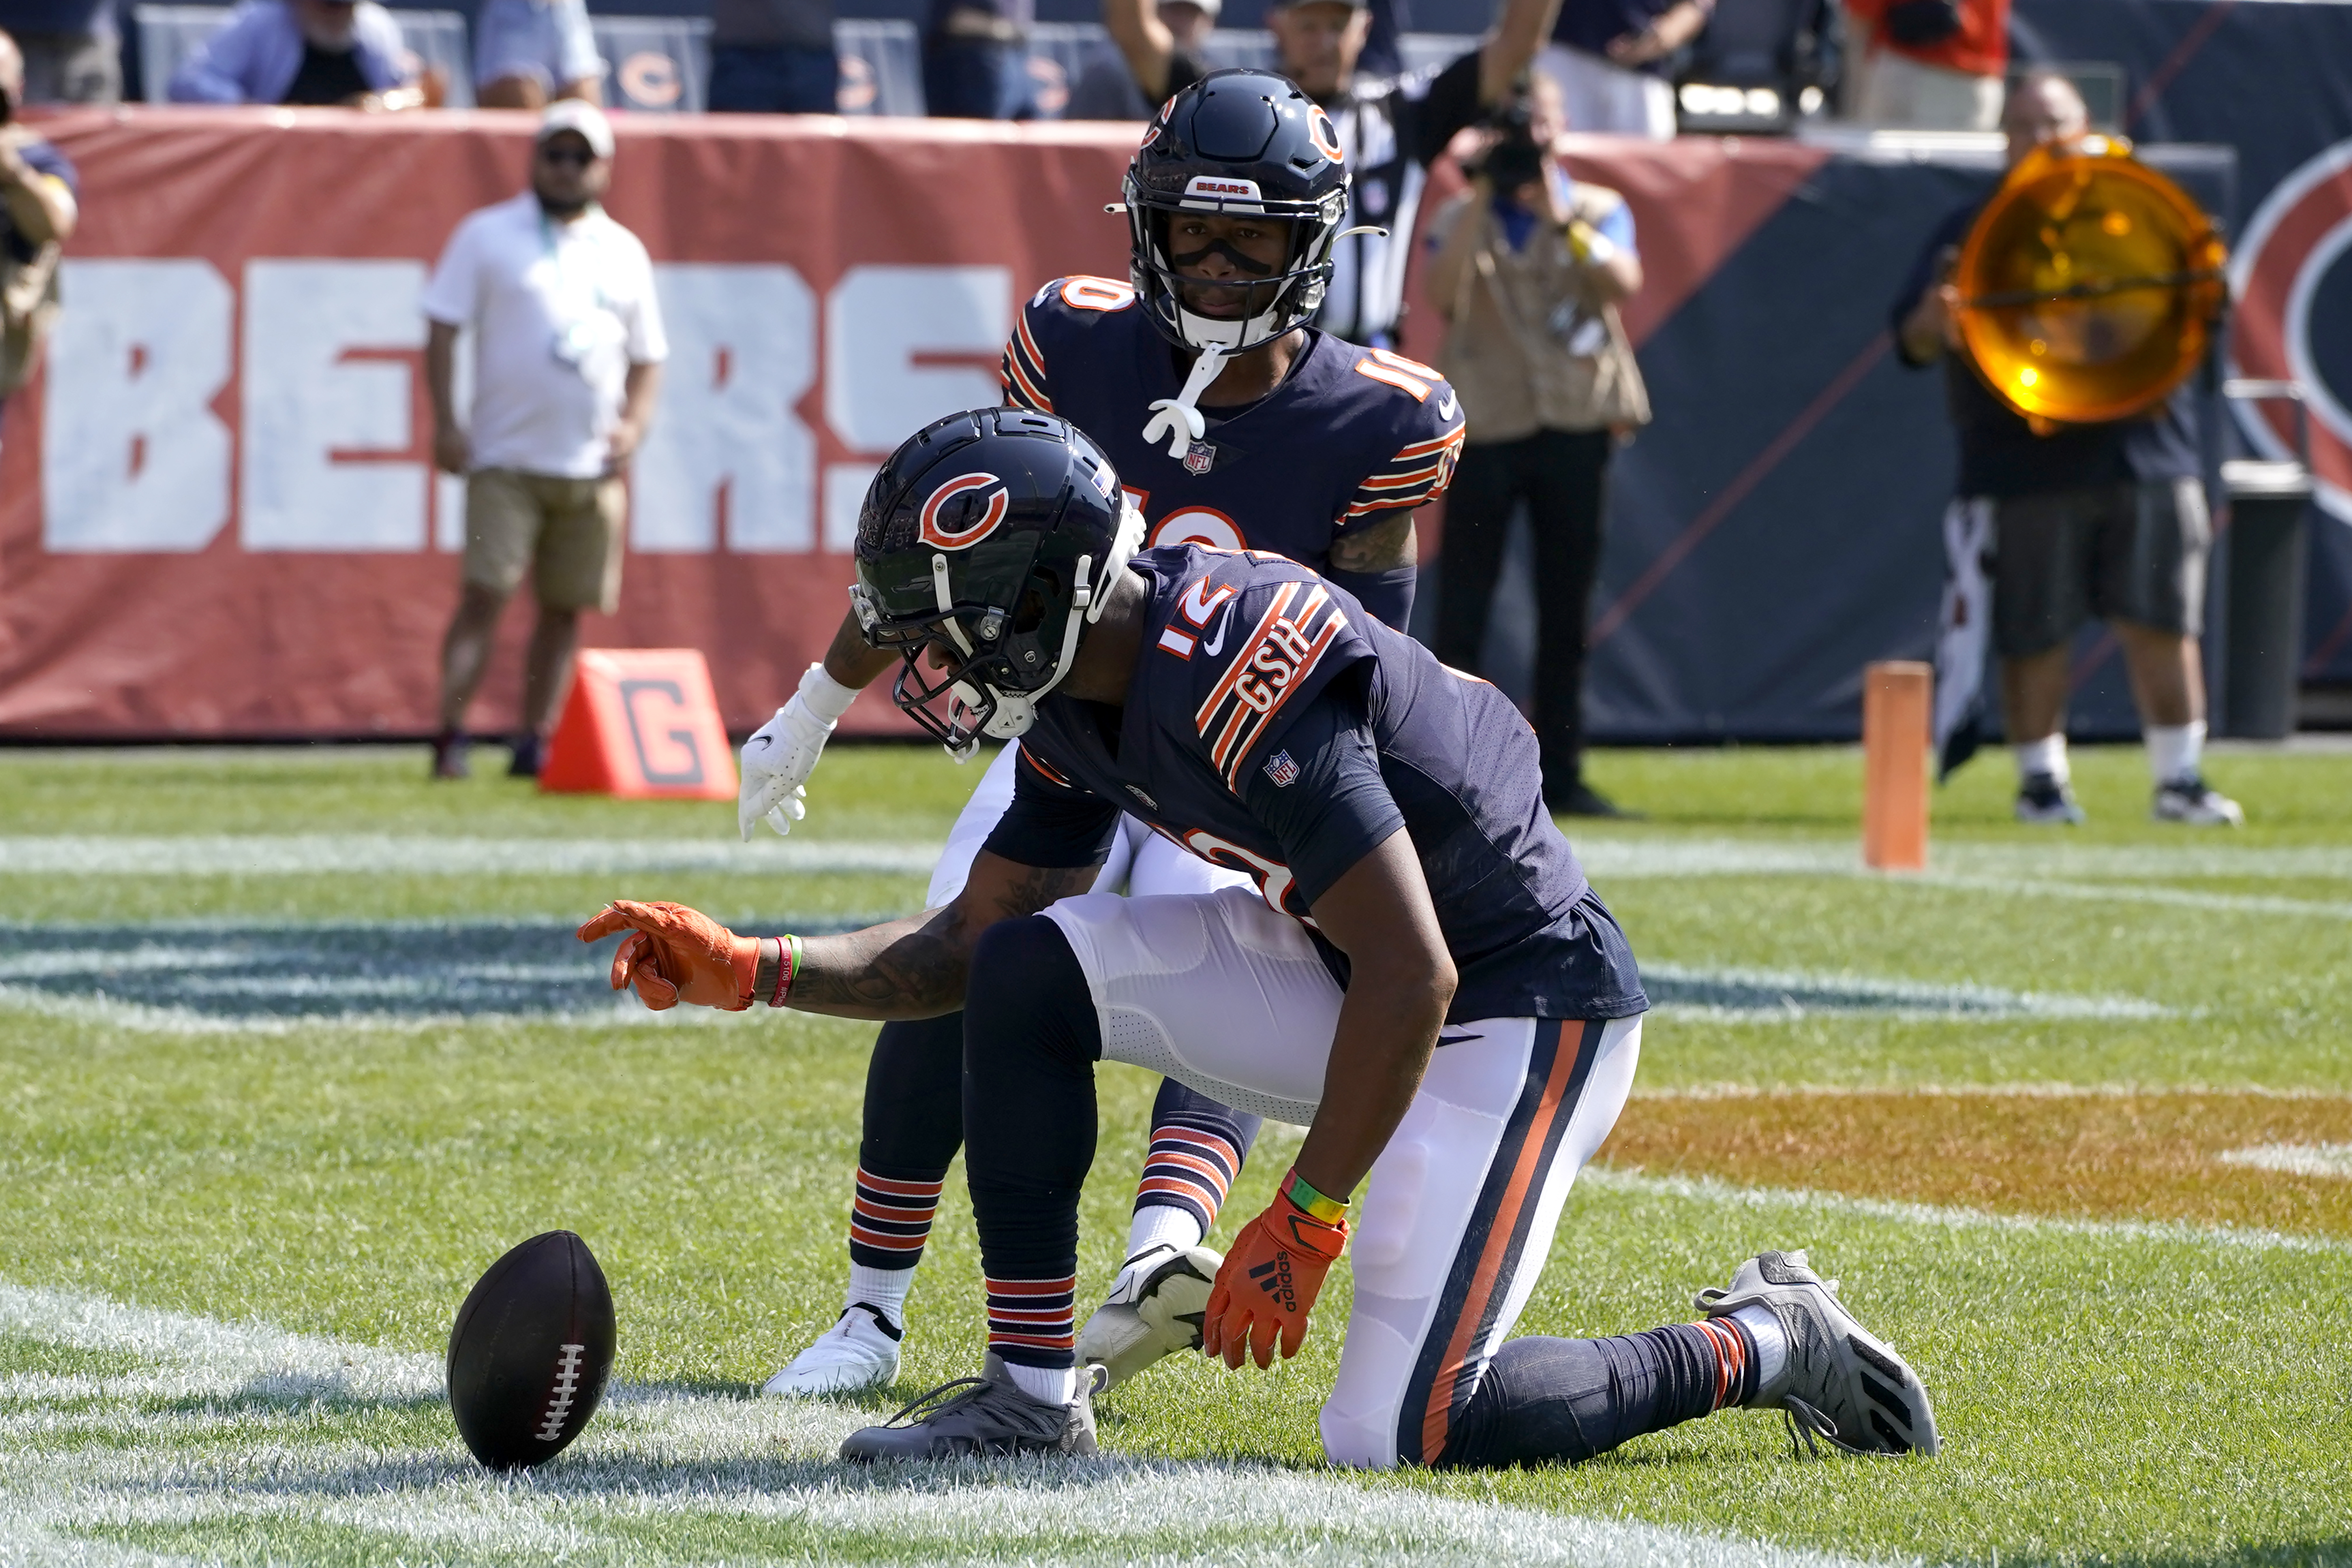 Chicago Bears' Allen Robinson (12) celebrates his touchdown against the Cincinnati Bengals Sunday, Sept. 19, 2021, in Chicago. (AP Photo/Nam Y. Huh) ORG XMIT: CXB114